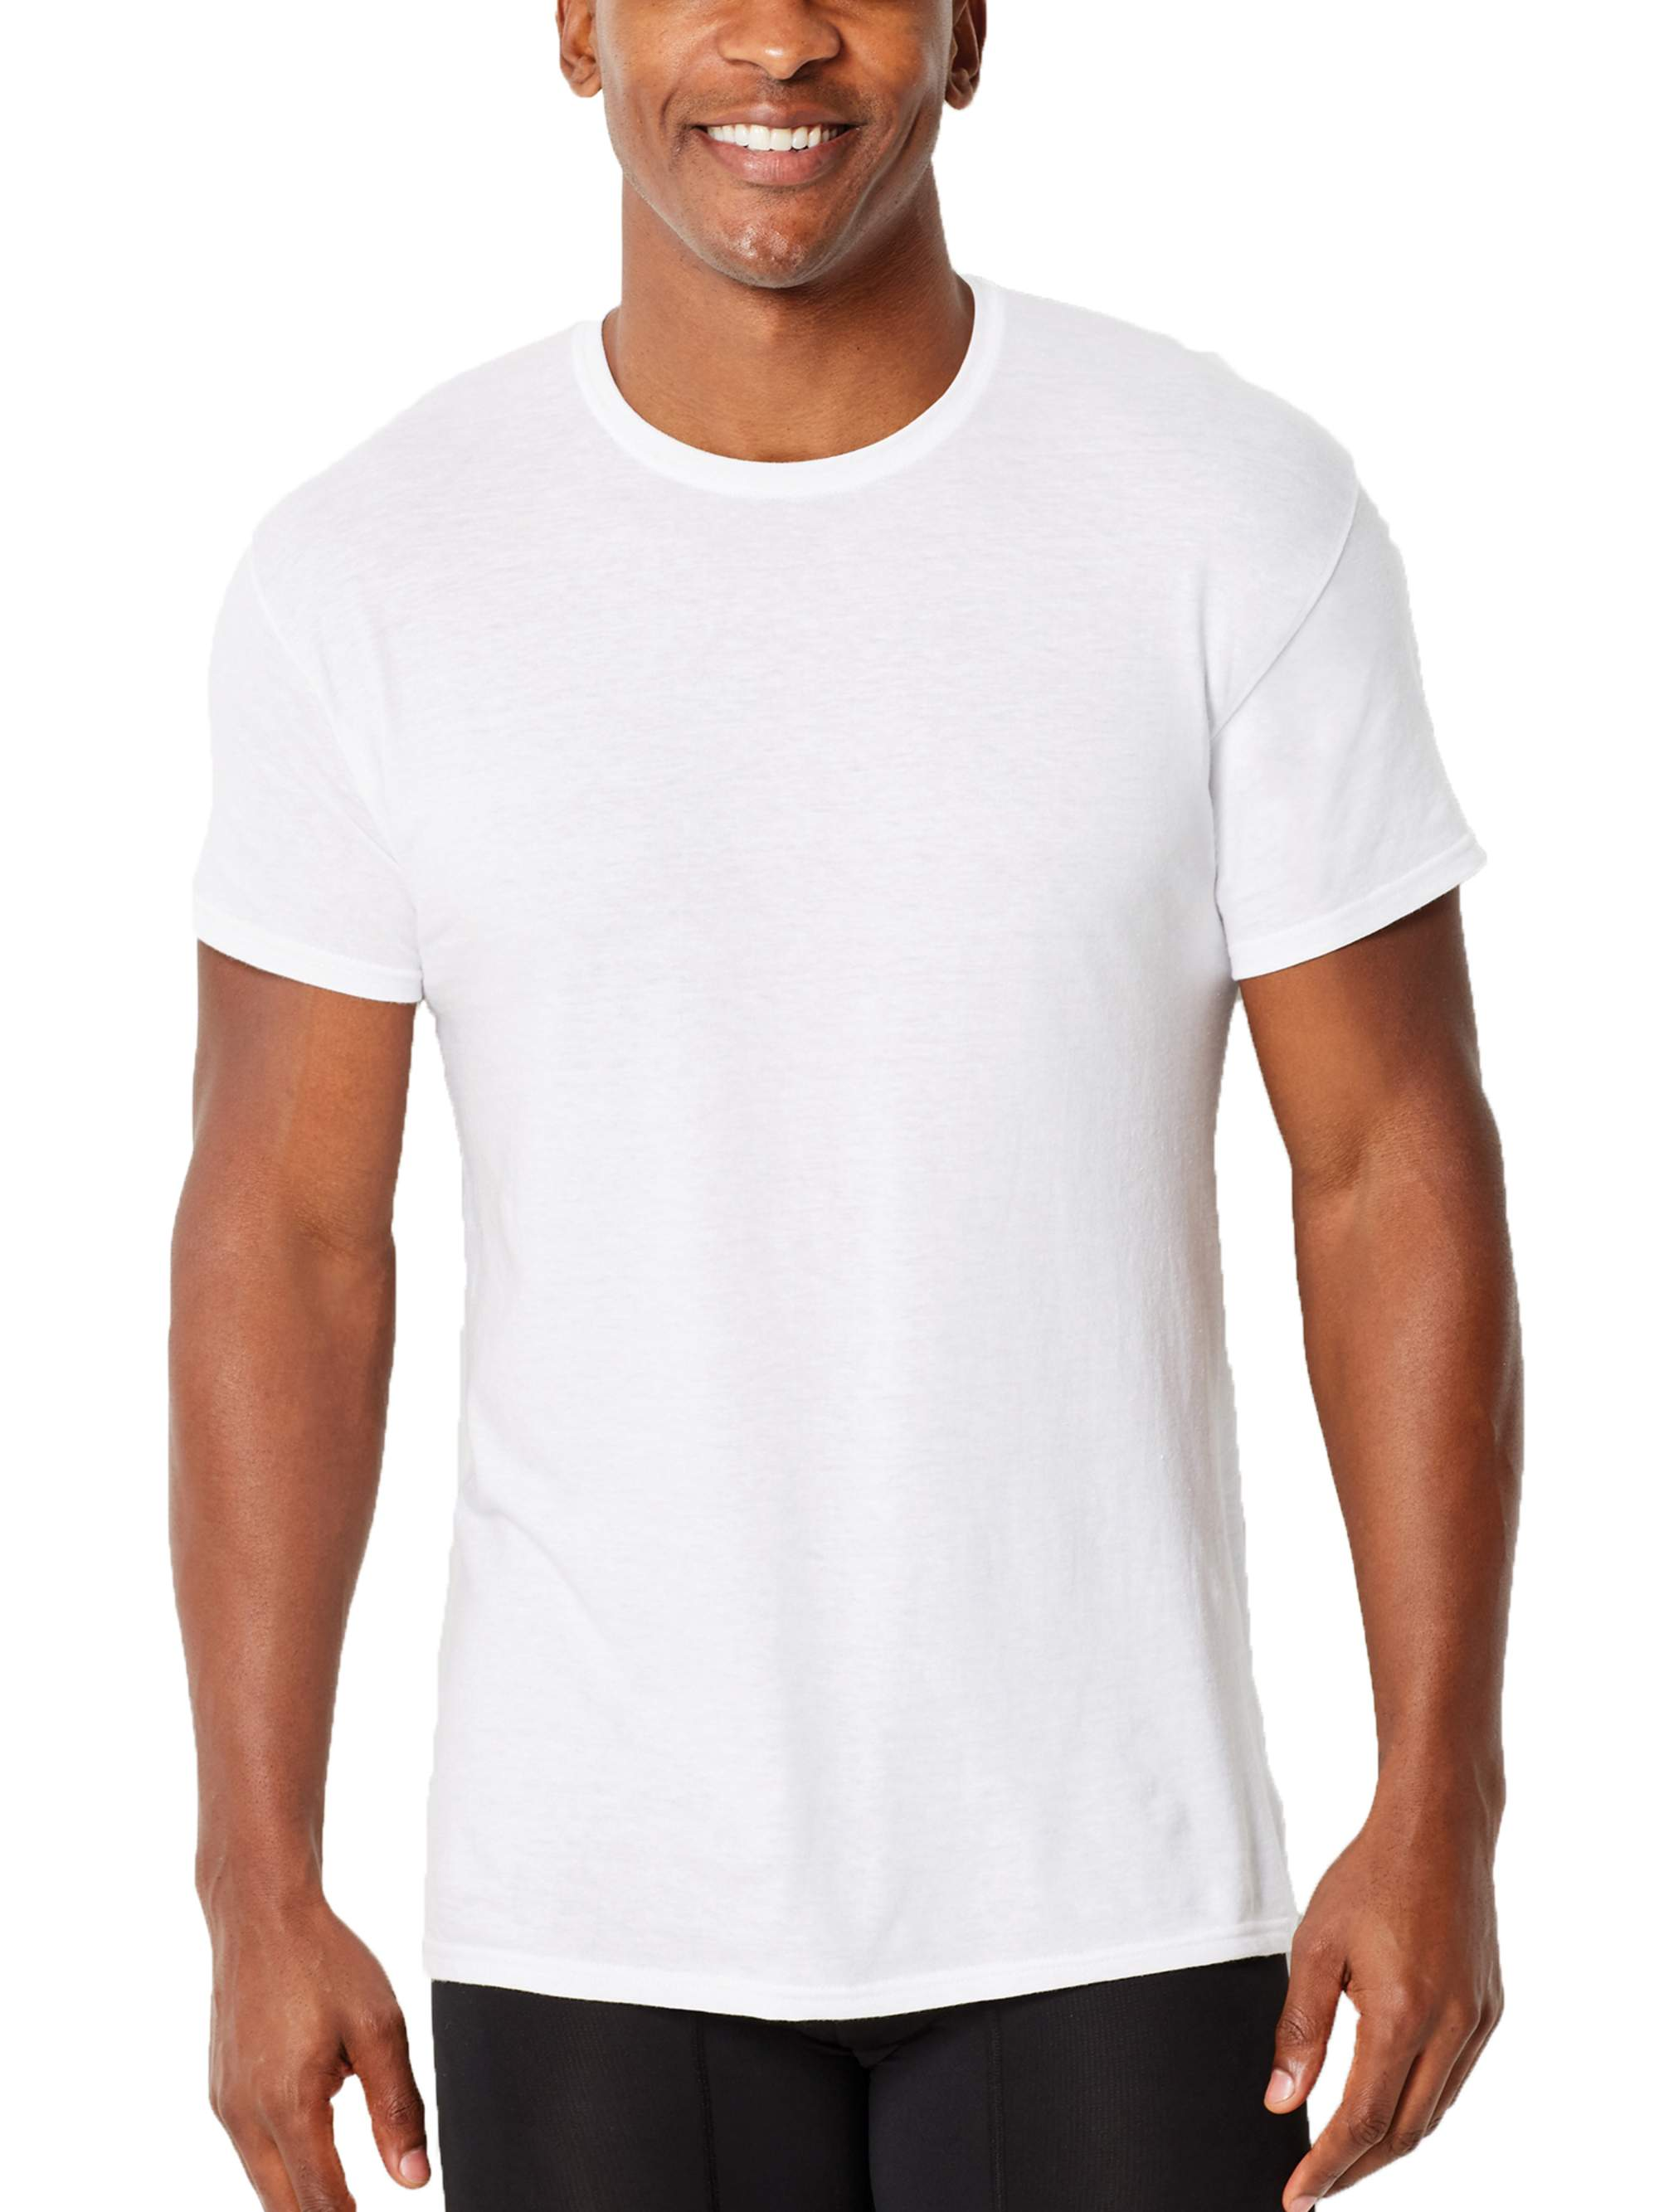 Big Mens ComfortFlex Fit White Crew T-Shirt, 3 Pack, 2XL